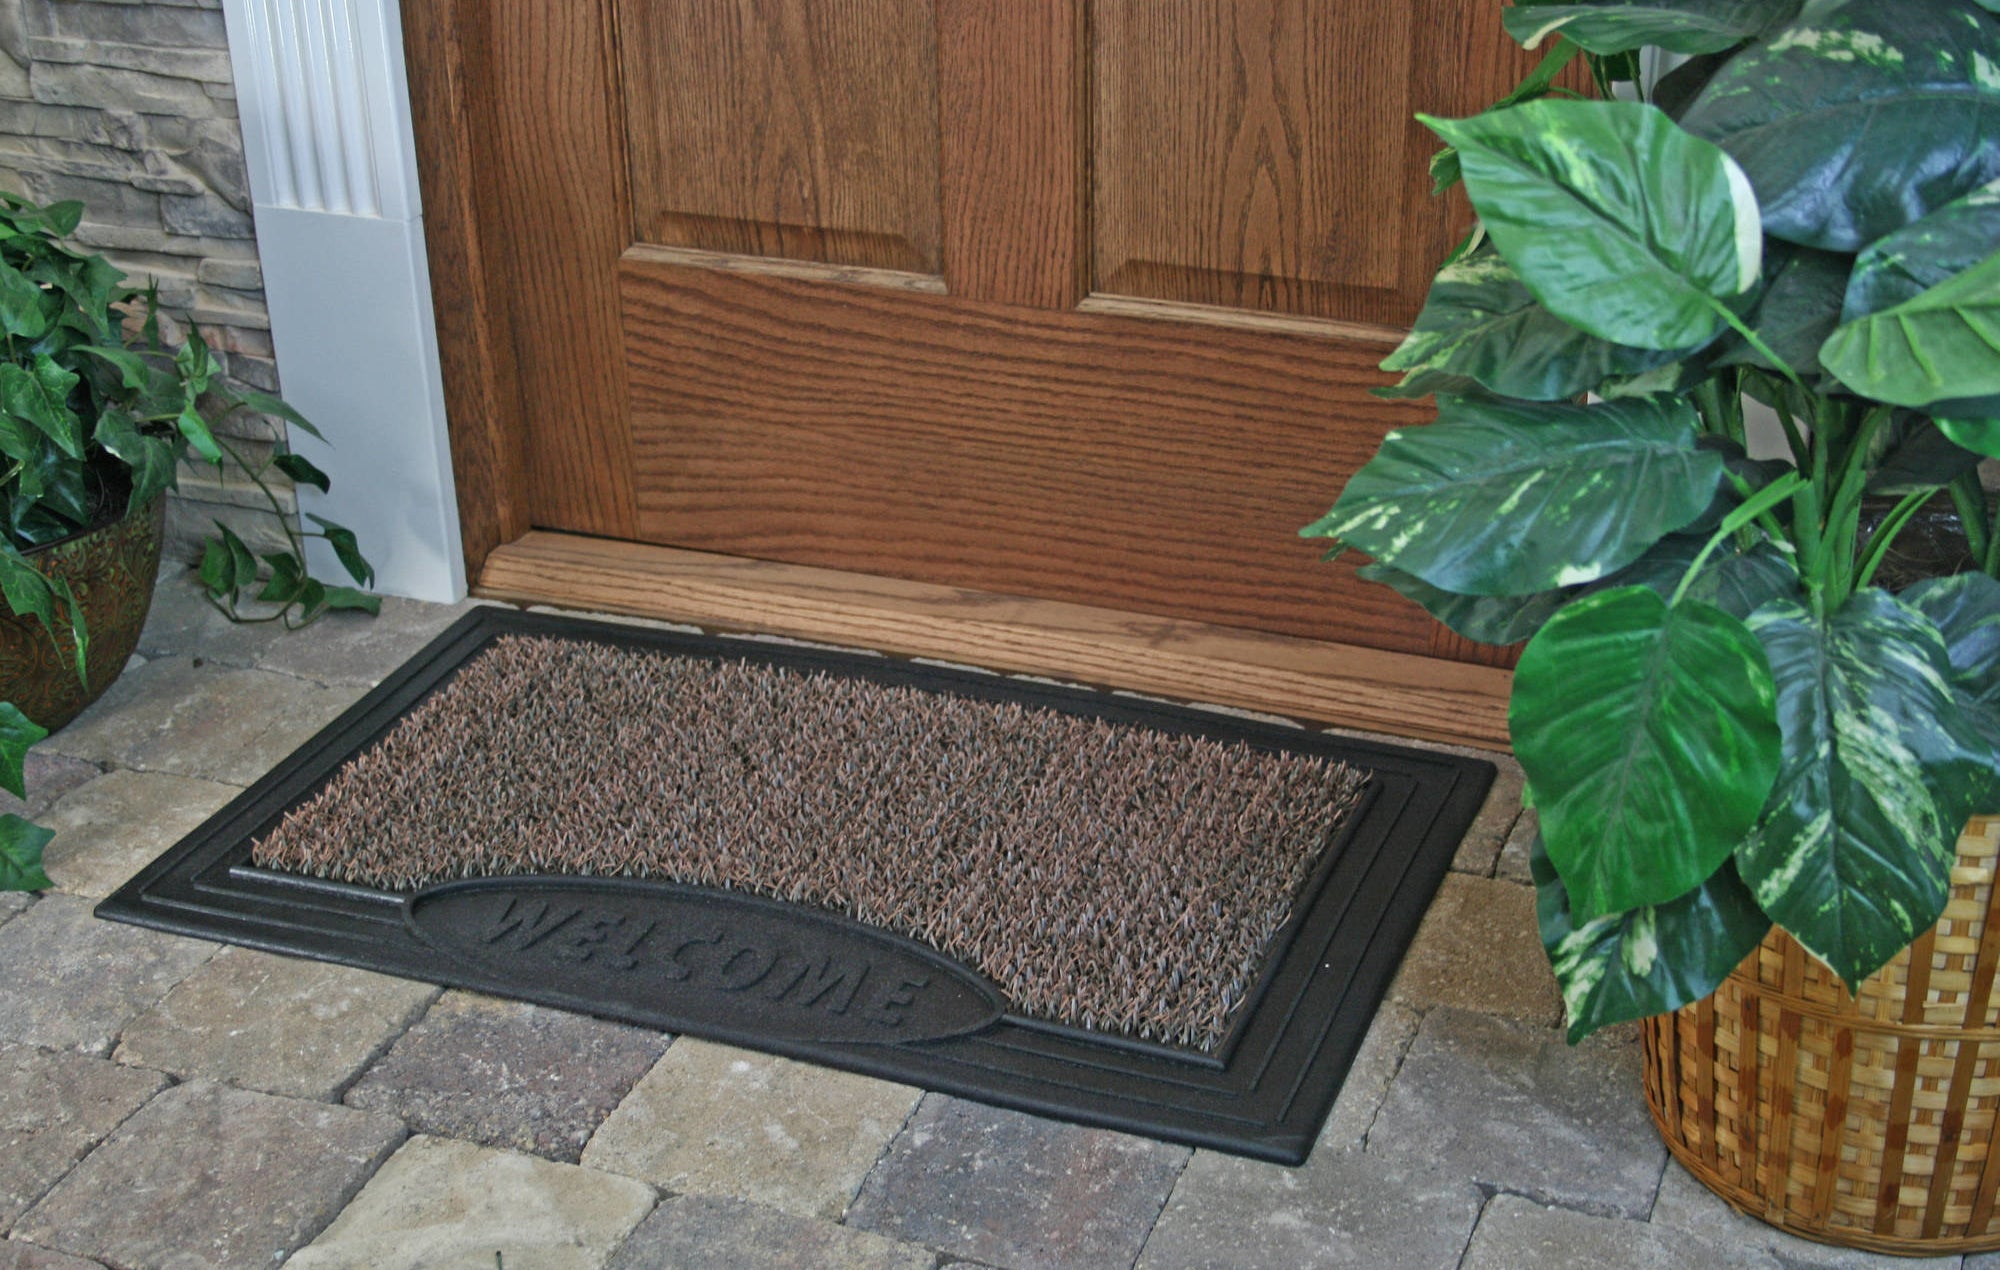 The sandbar brown scraper welcome doormat